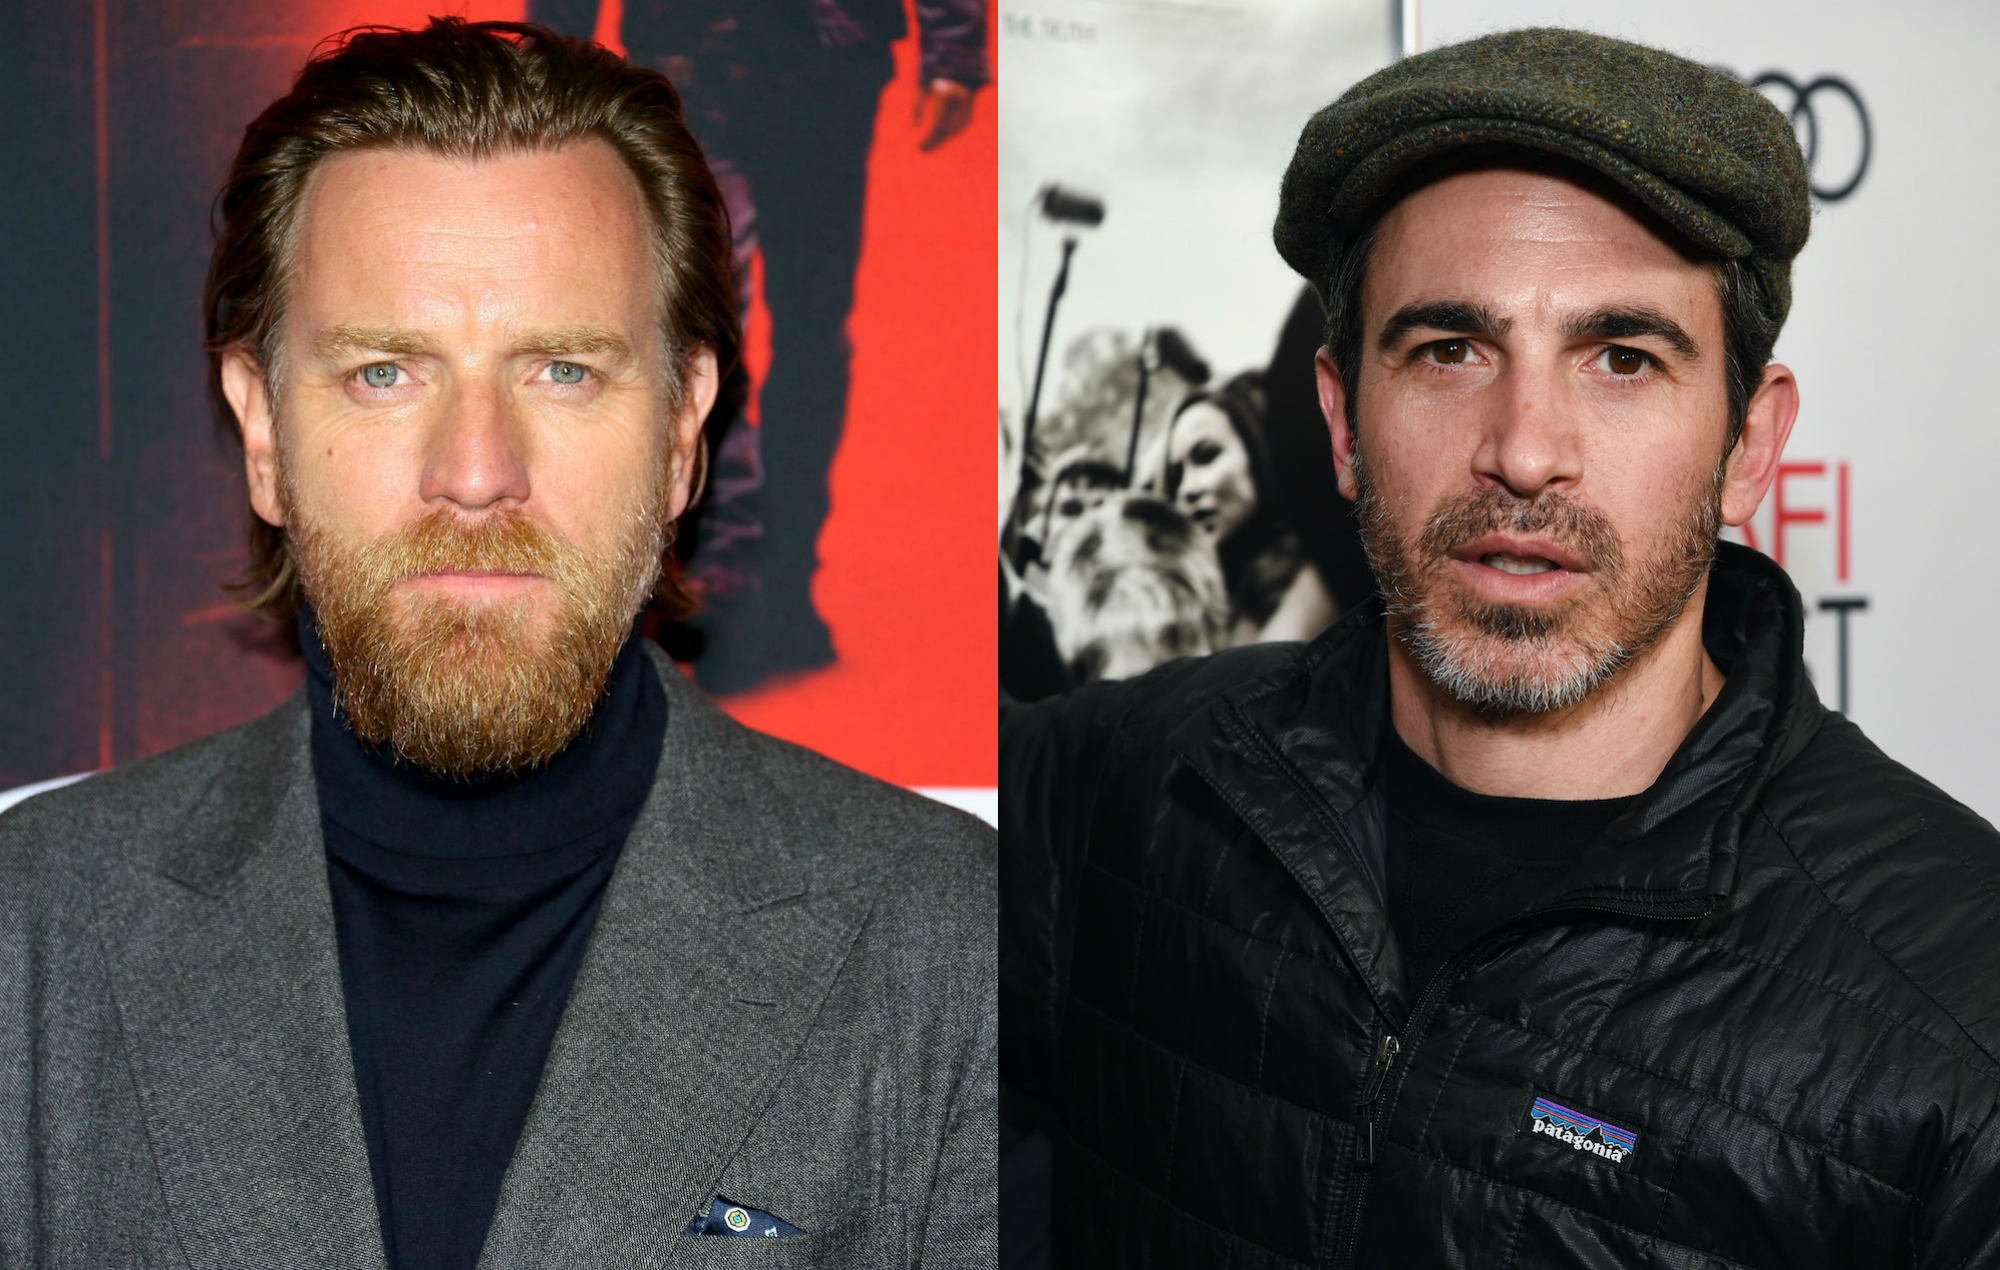 """'Birds Of Prey''s Ewan McGregor and Chris Messina say they're proud to star in film that """"tackles everyday misogyny"""""""